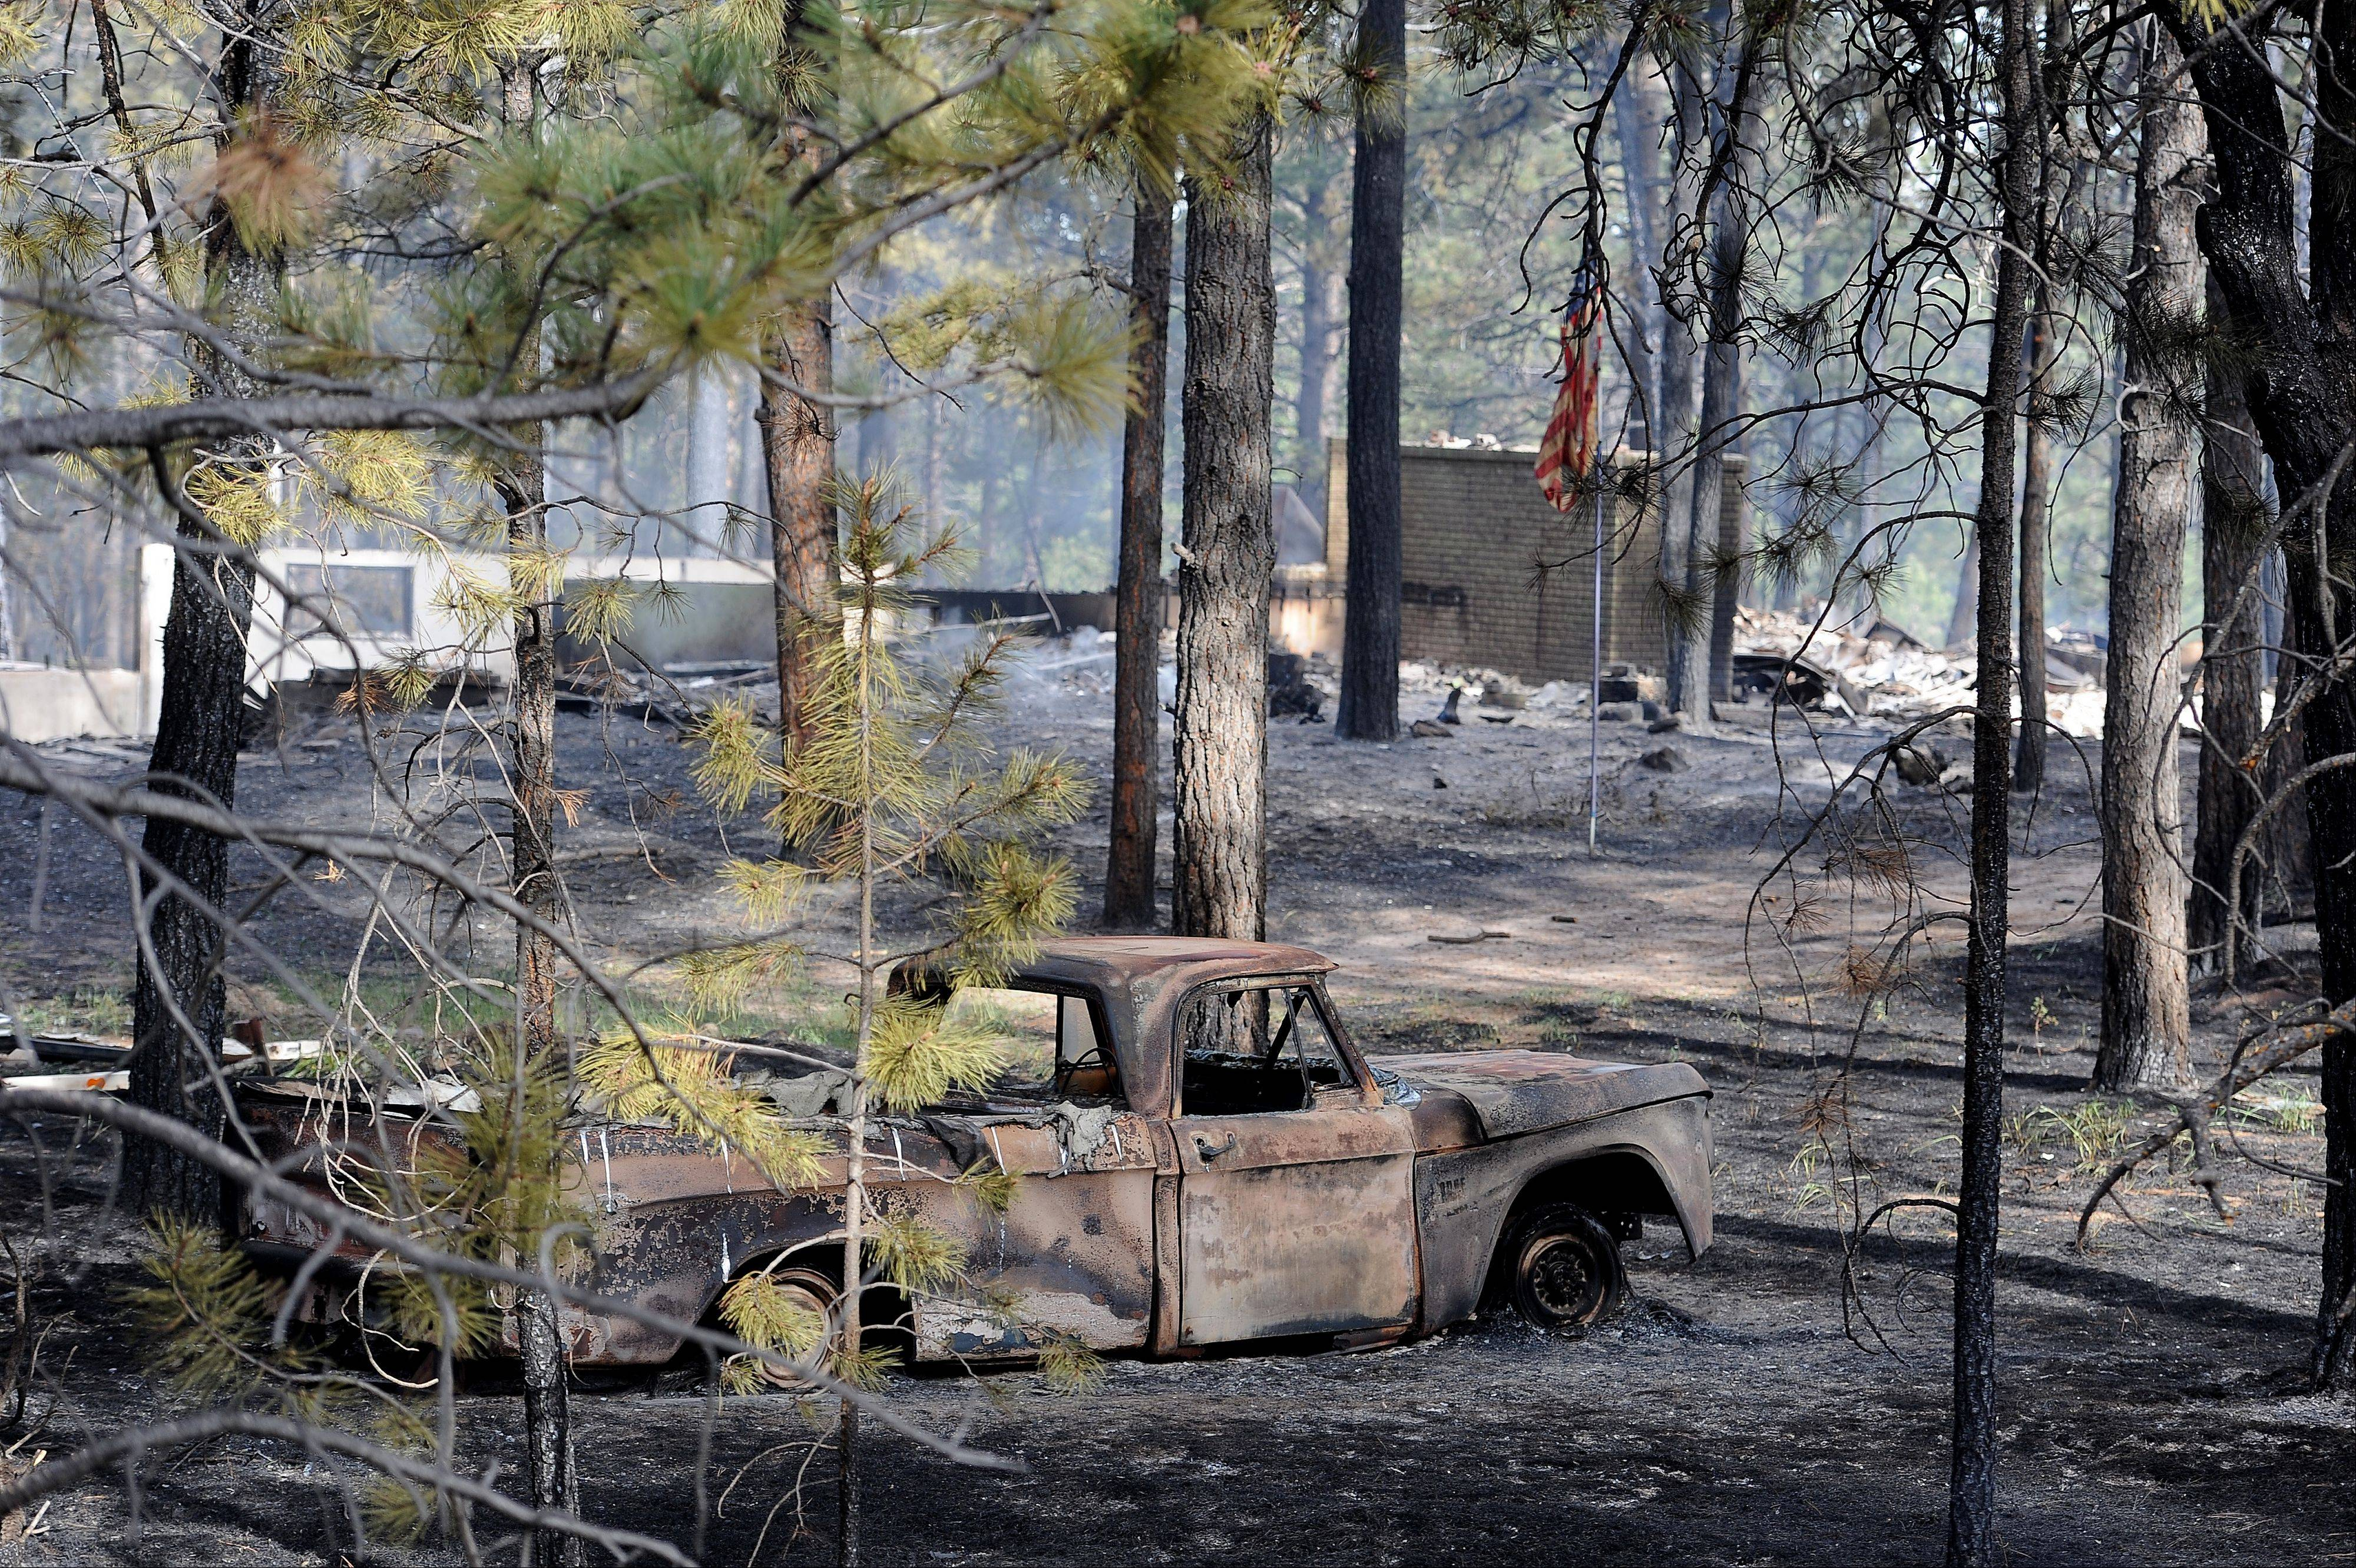 Blackened and charred homes are left along Herring Road in the Black Forest area northeast of Colorado Springs, Colo., on Wednesday, June 12, 2013. The Black Forest Fire northeast of Colorado Springs earlier prompted evacuation orders and pre-evacuation notices to more than 9,000 people and to about 3,500 homes and businesses, sheriff's officials said. The fire has destroyed more than 360 homes.